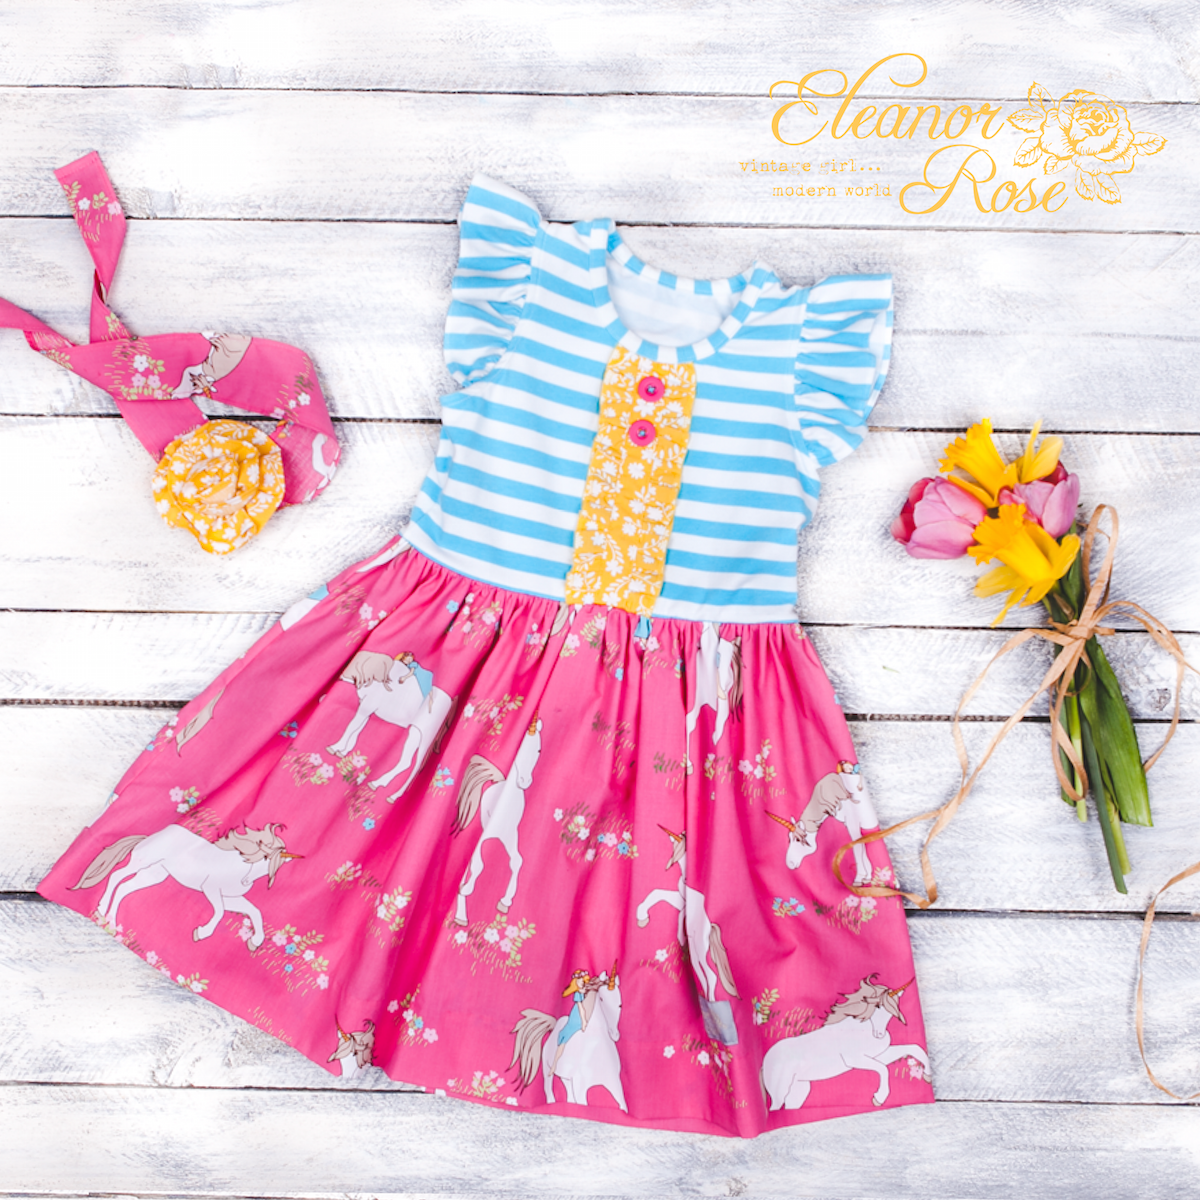 Not yet released, this is our Unicorn Meadow knit dress. Magic included. ;)  This dress releases on Wednesday, April 8 at 7am CT! http://eleanorrose.com/